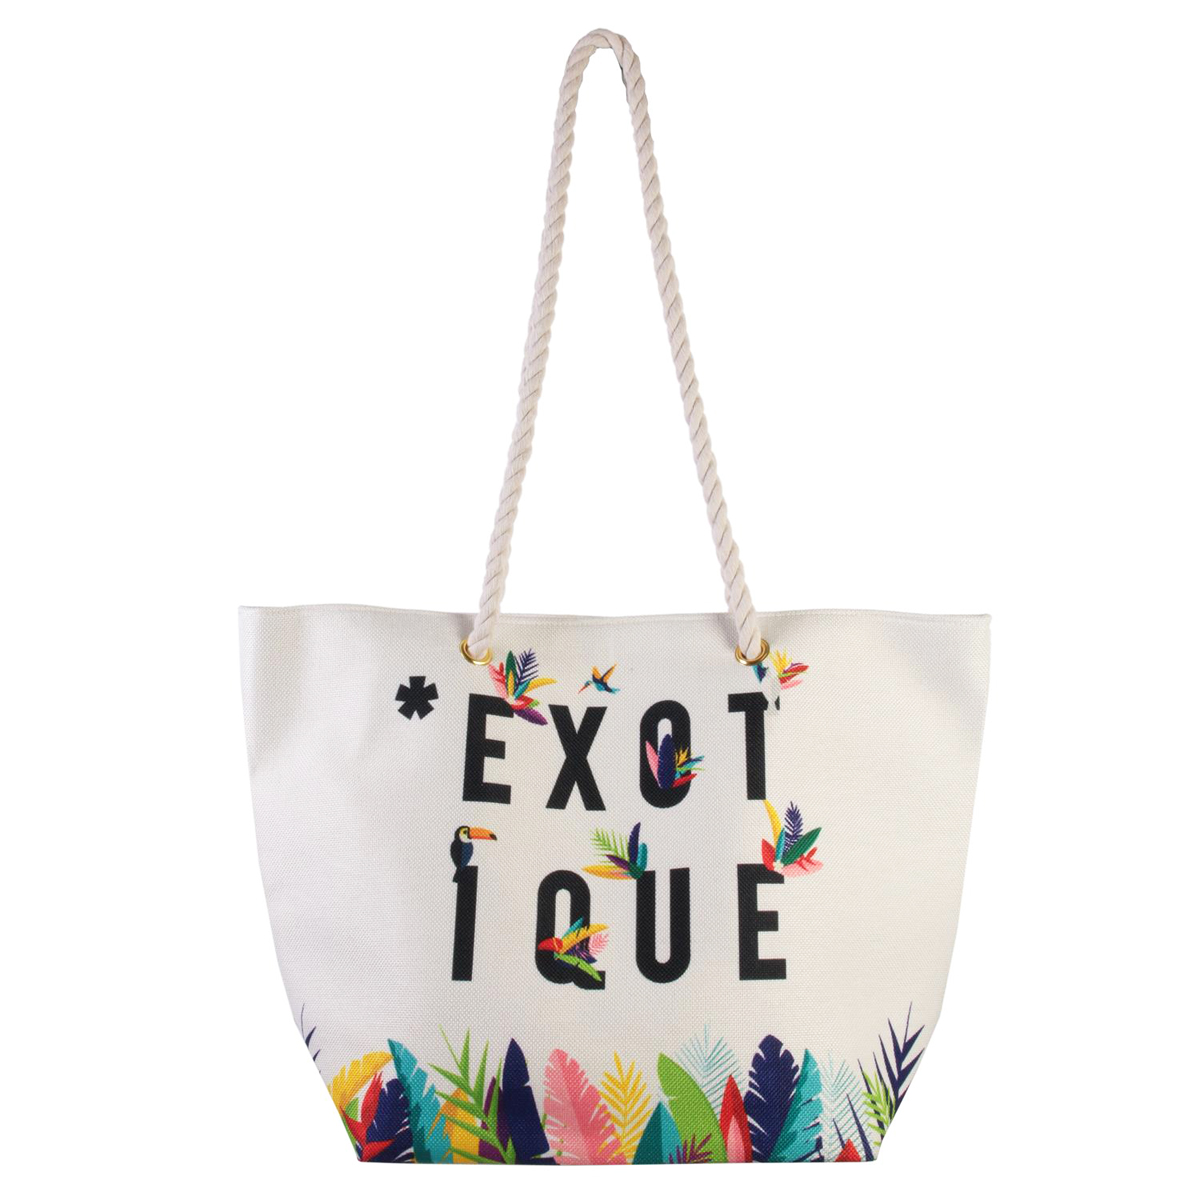 Cabas de plage \'Tropical\' blanc multicolore (exotique) - 45x35x15 cm - [Q7778]